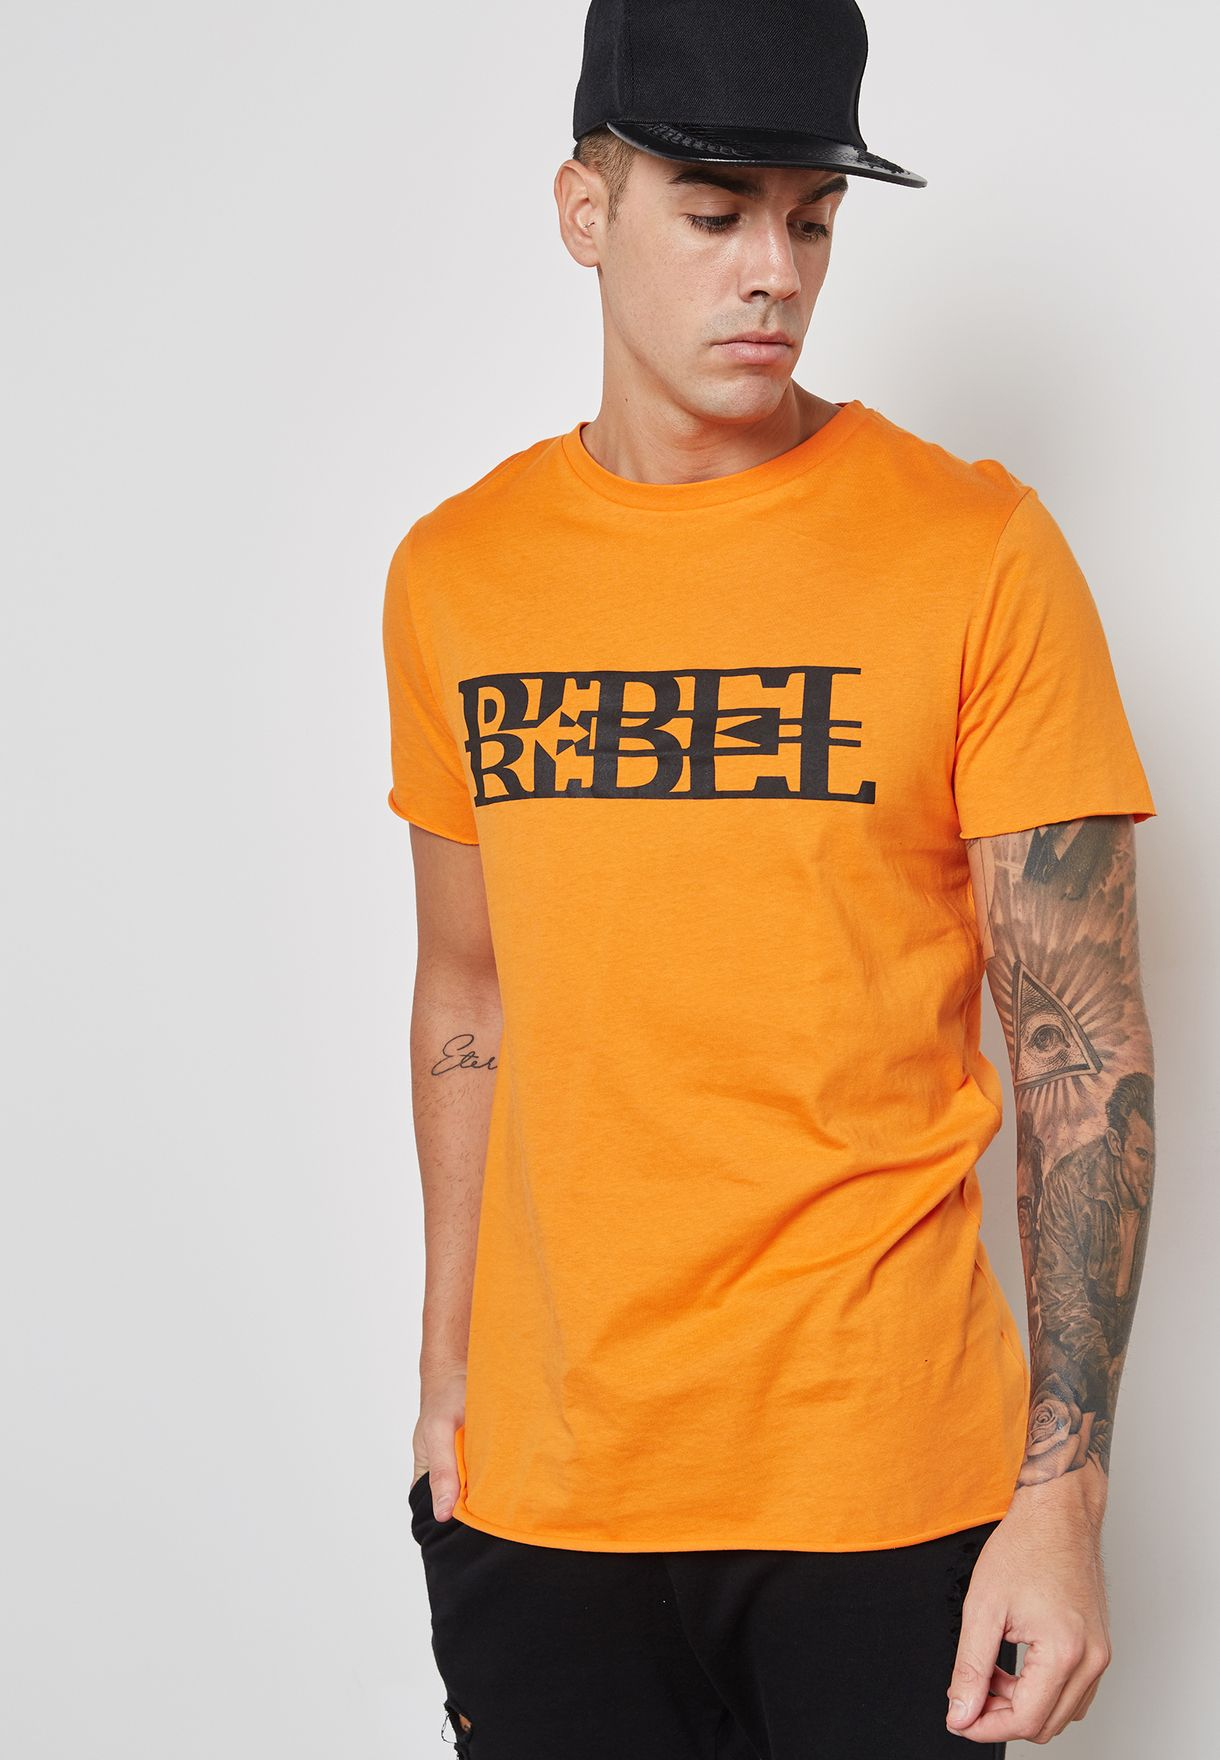 Rebel Print T-Shirt